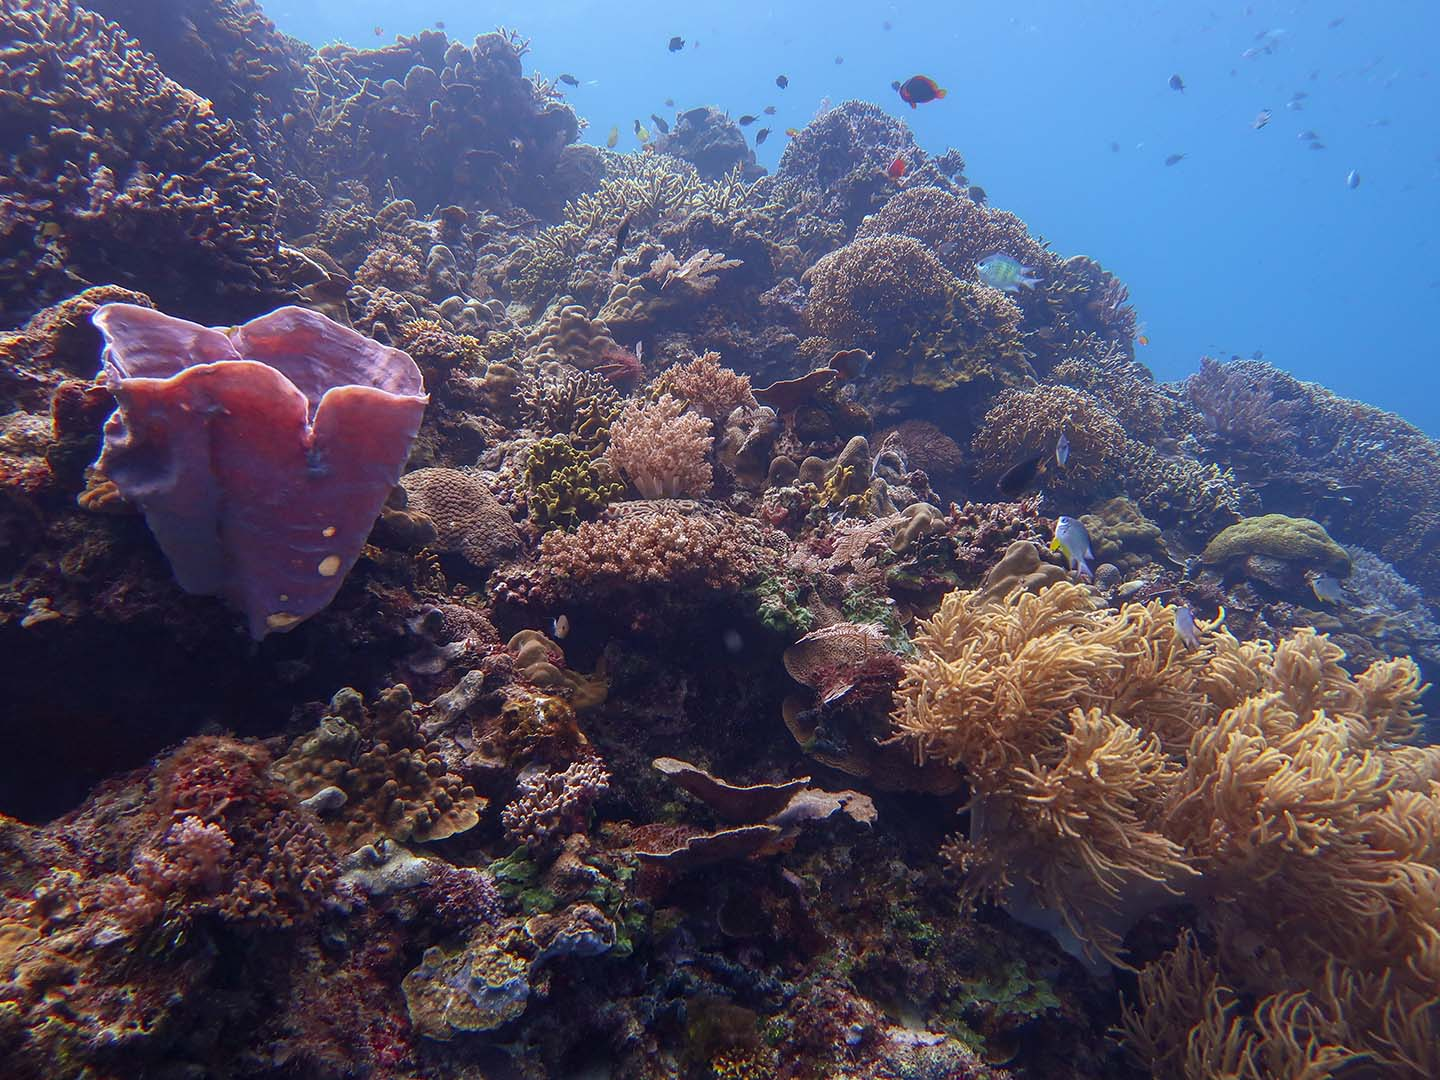 Sawang Dive Site in Siquijor has beautiful underwater terrain filled with sponges and hard and soft corals.